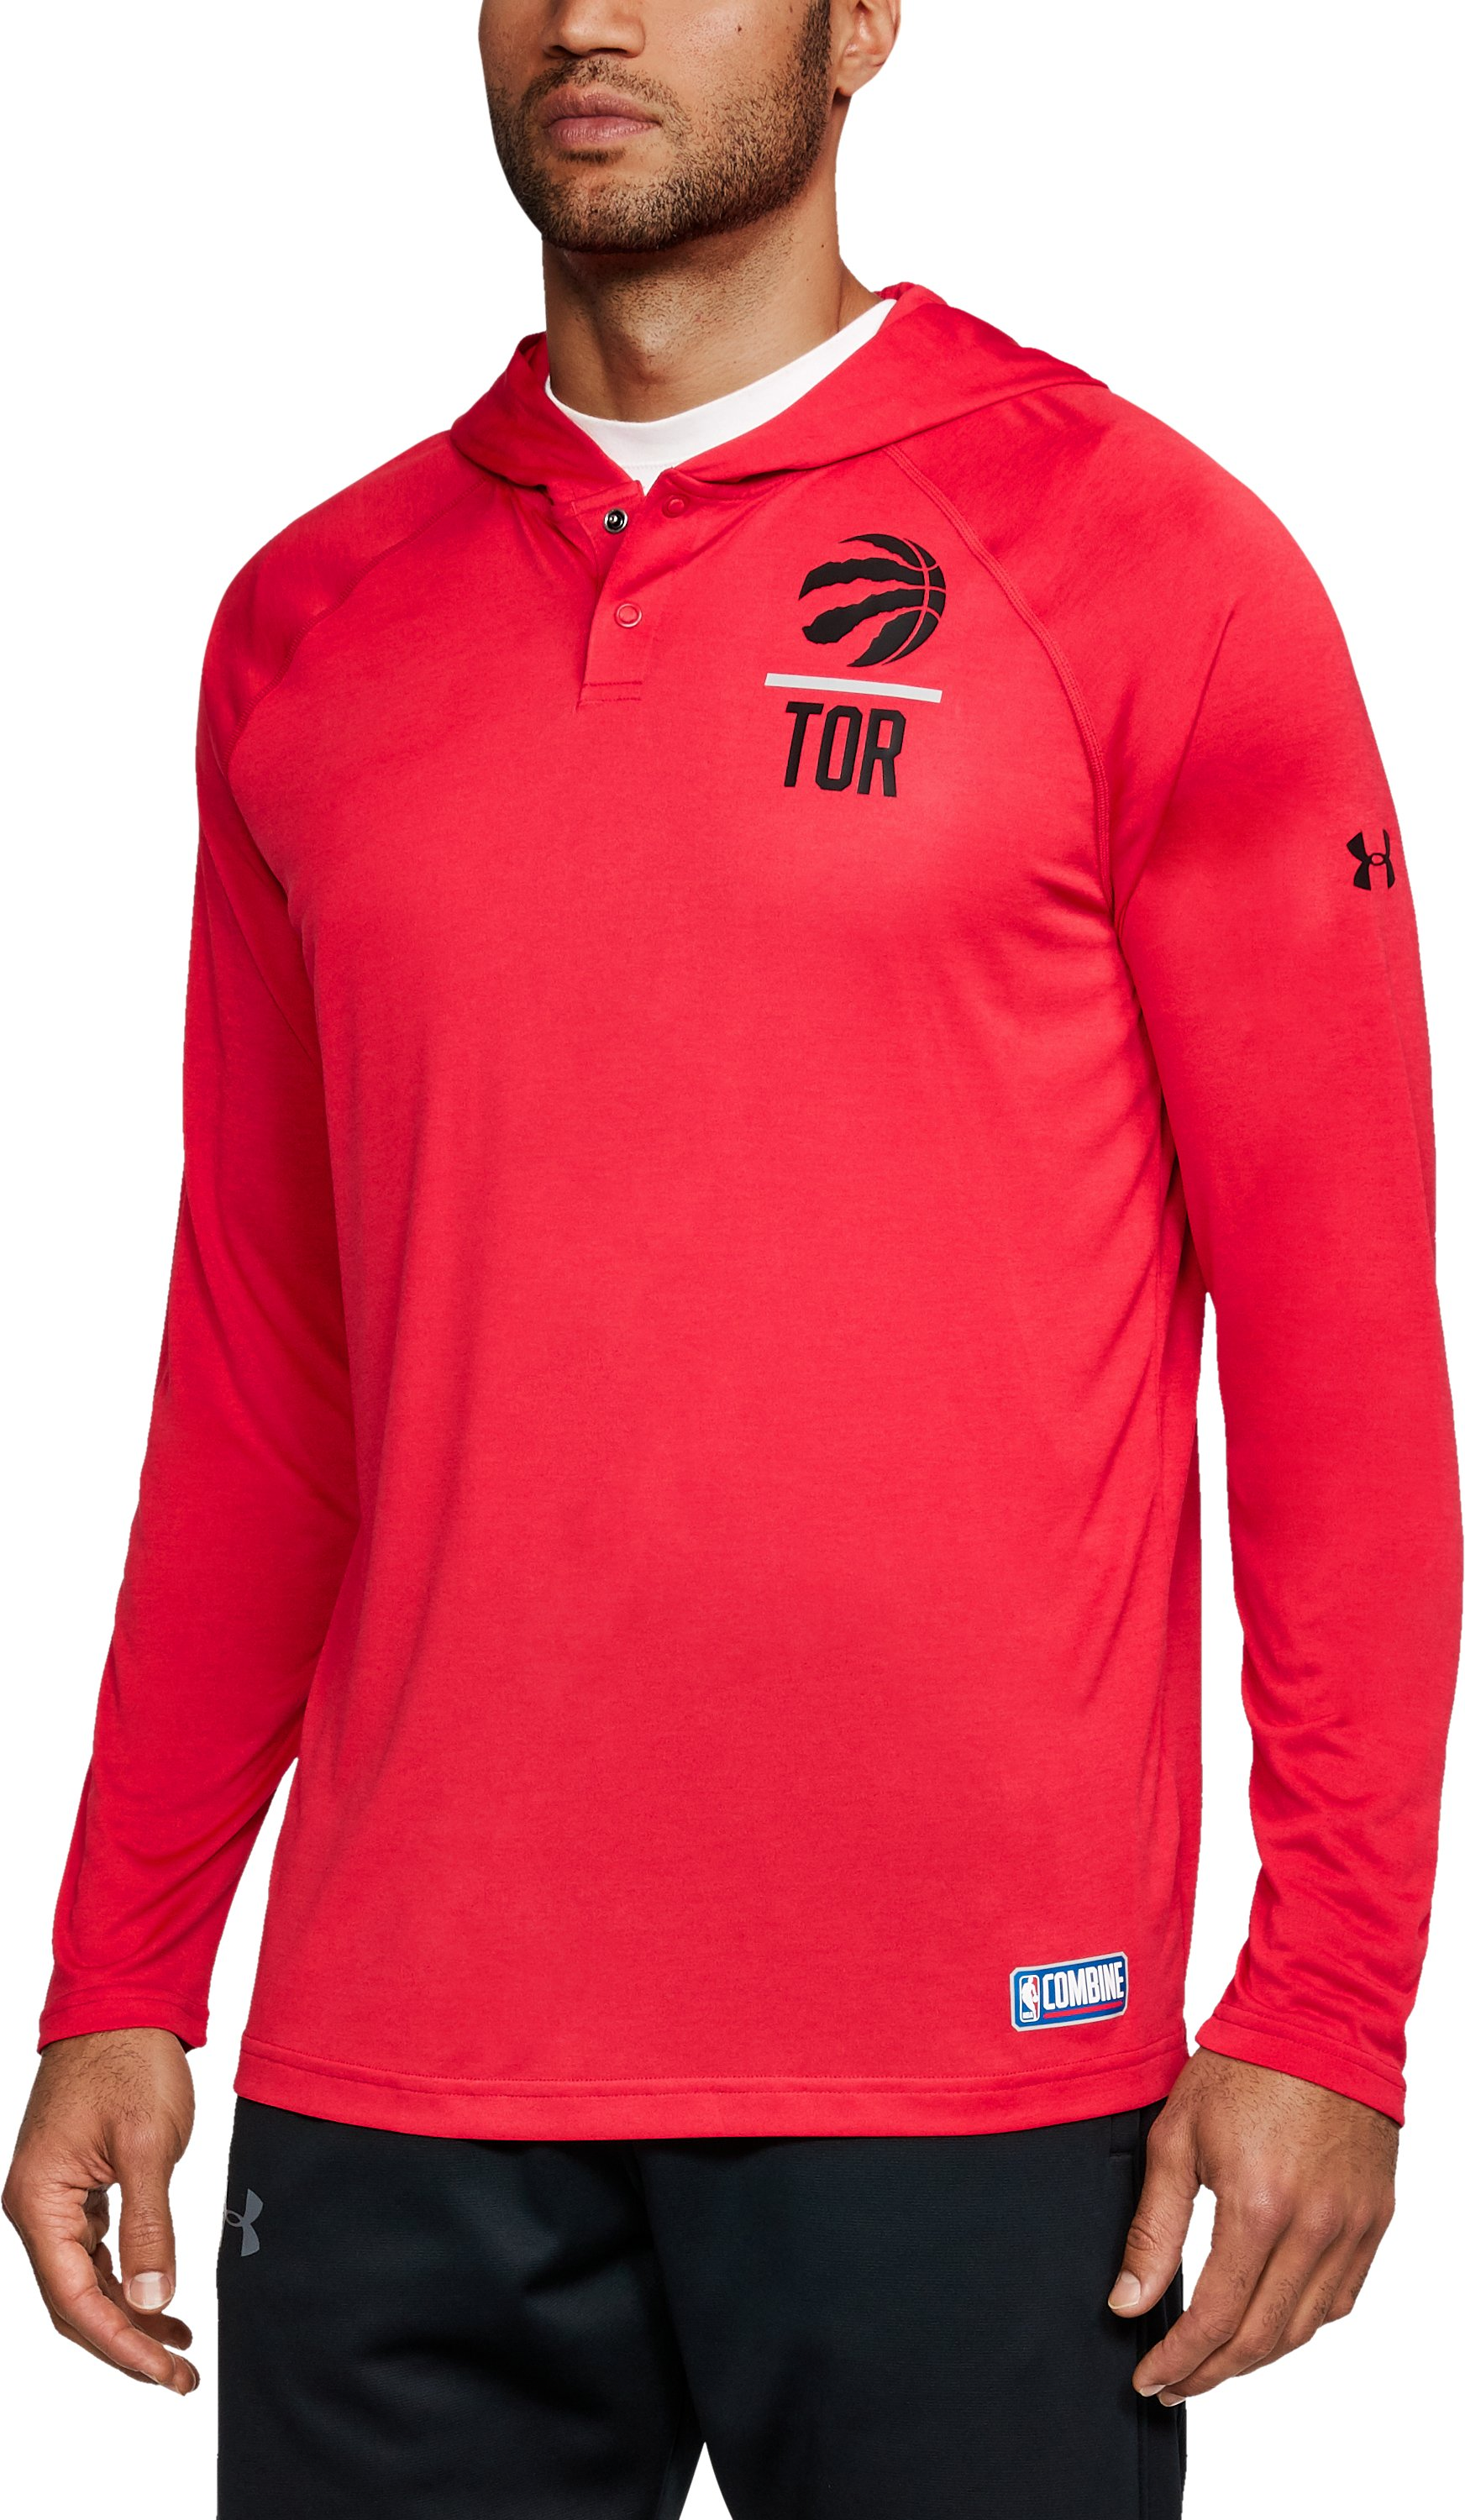 Men's NBA Combine UA Tech™ Printed Hoodie, NBA_TORONTO RAPTORS_RED